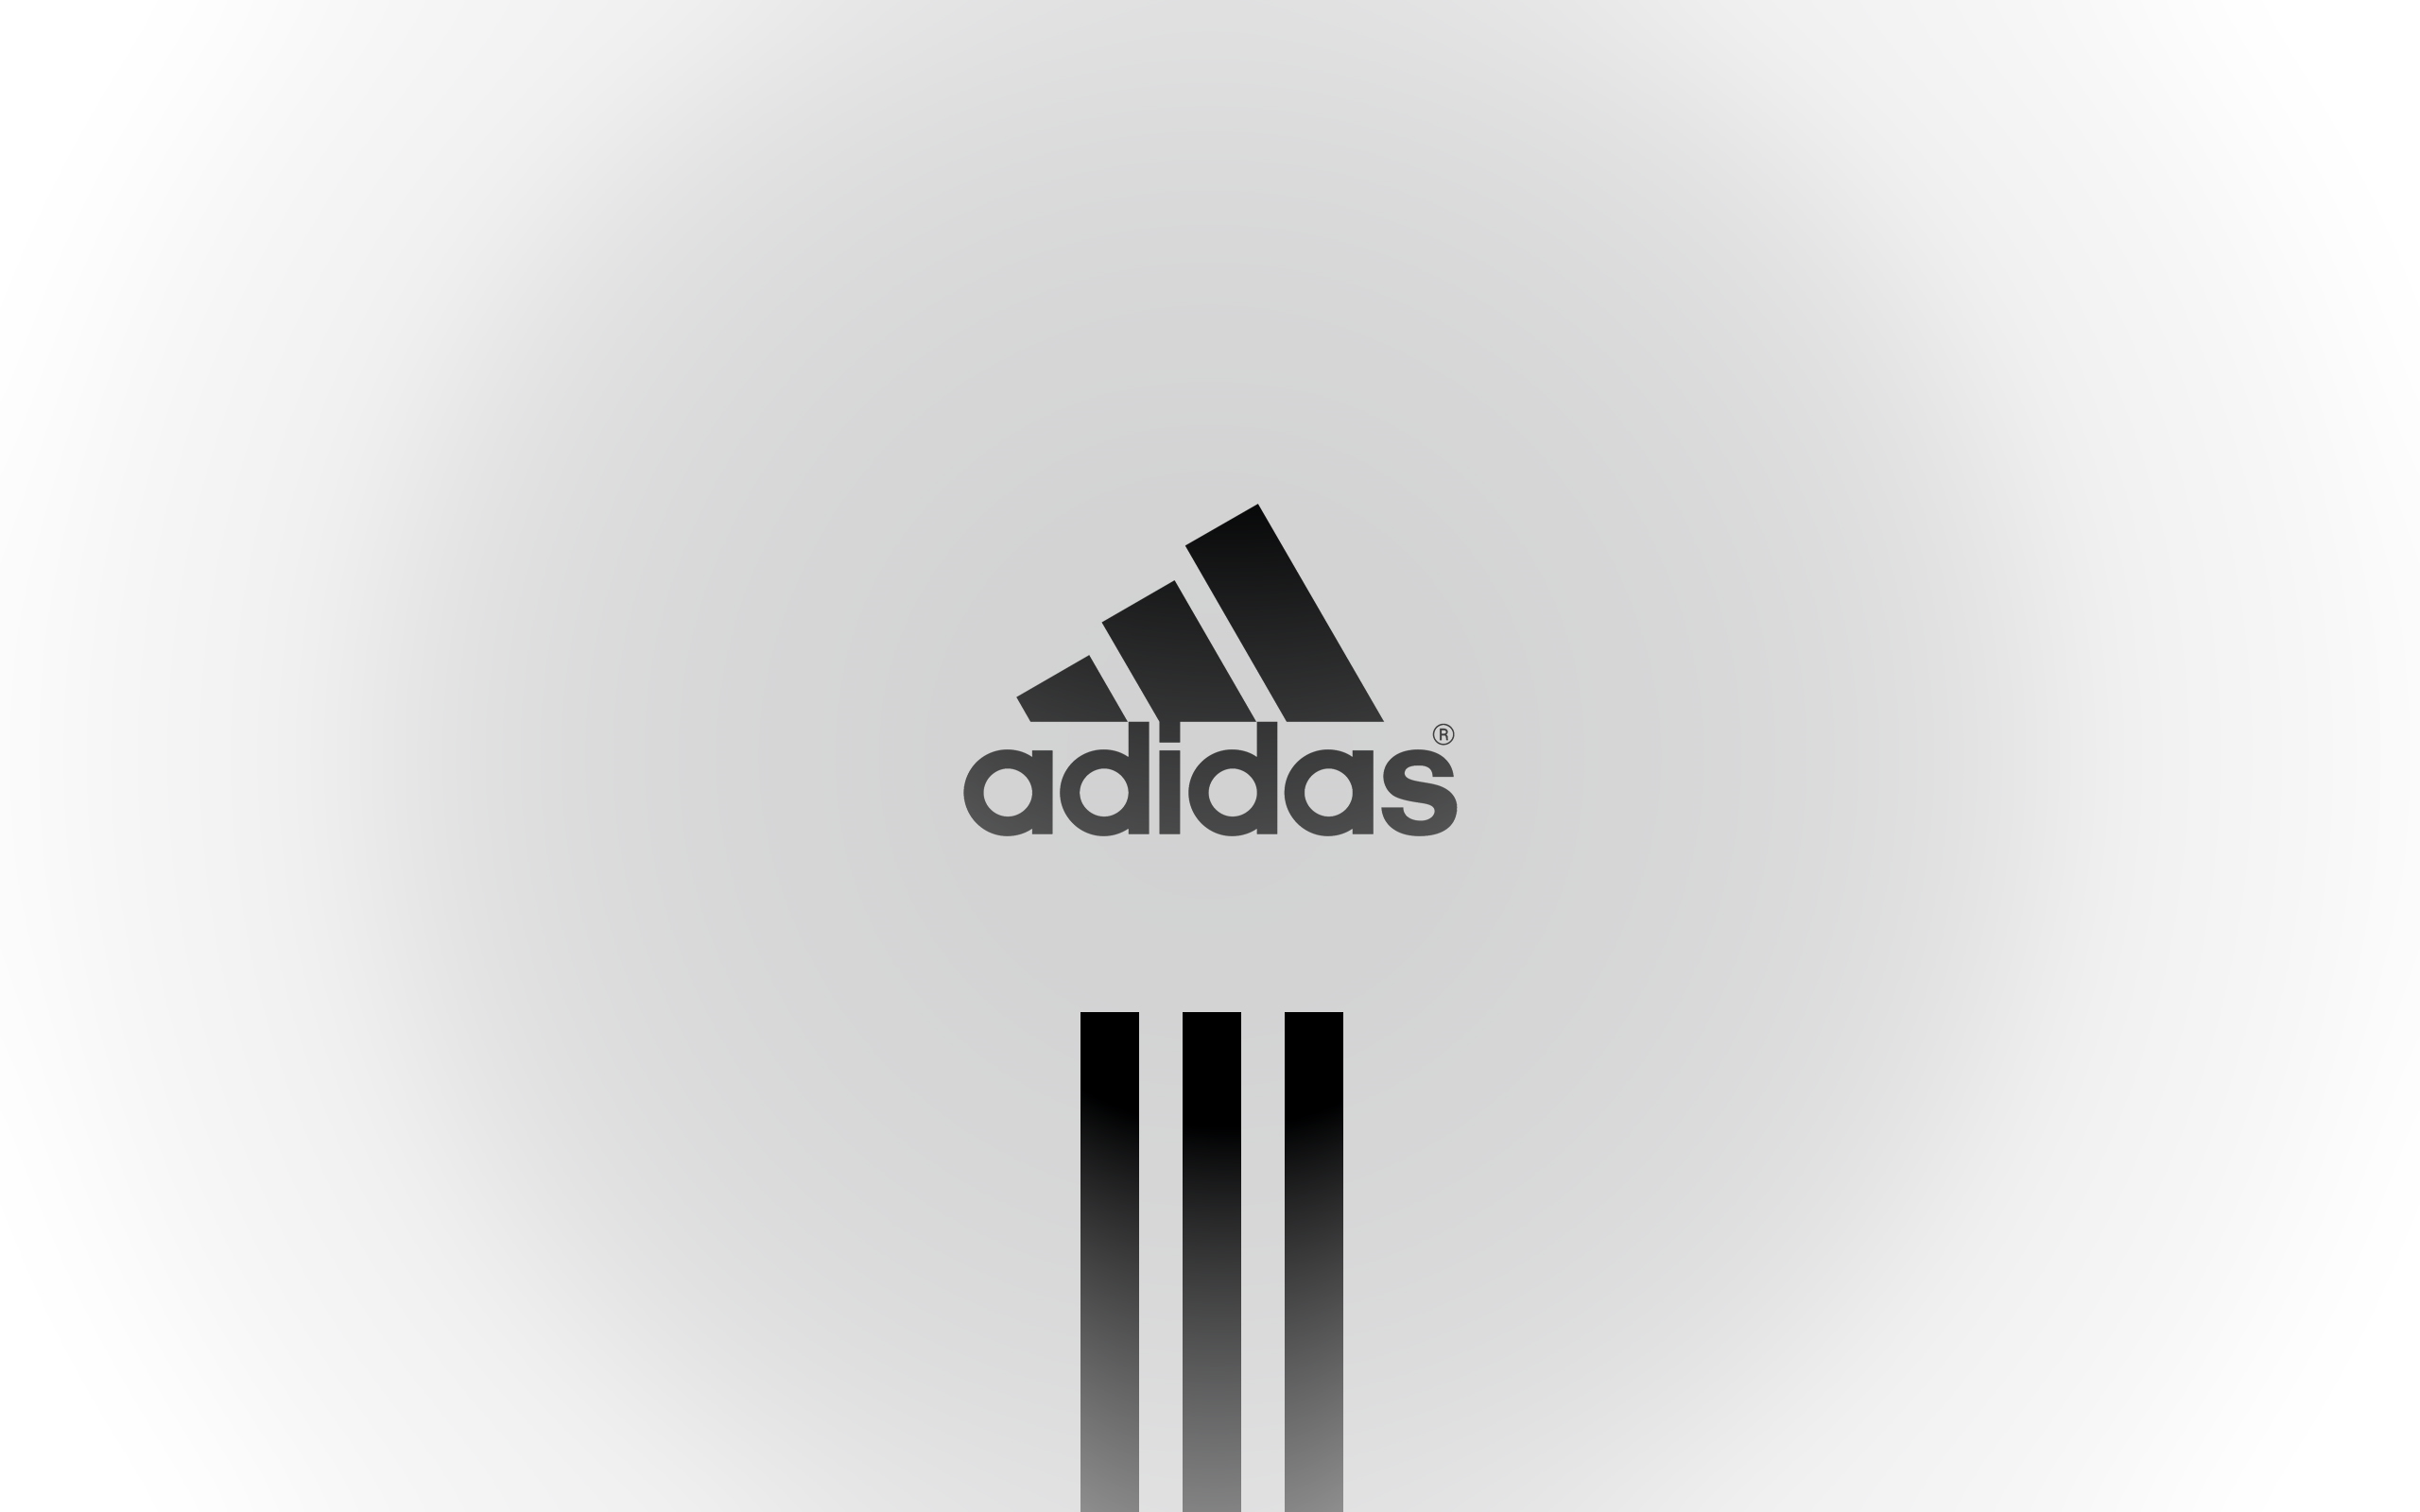 2560x1600 Adidas logo wallpapers Gallery